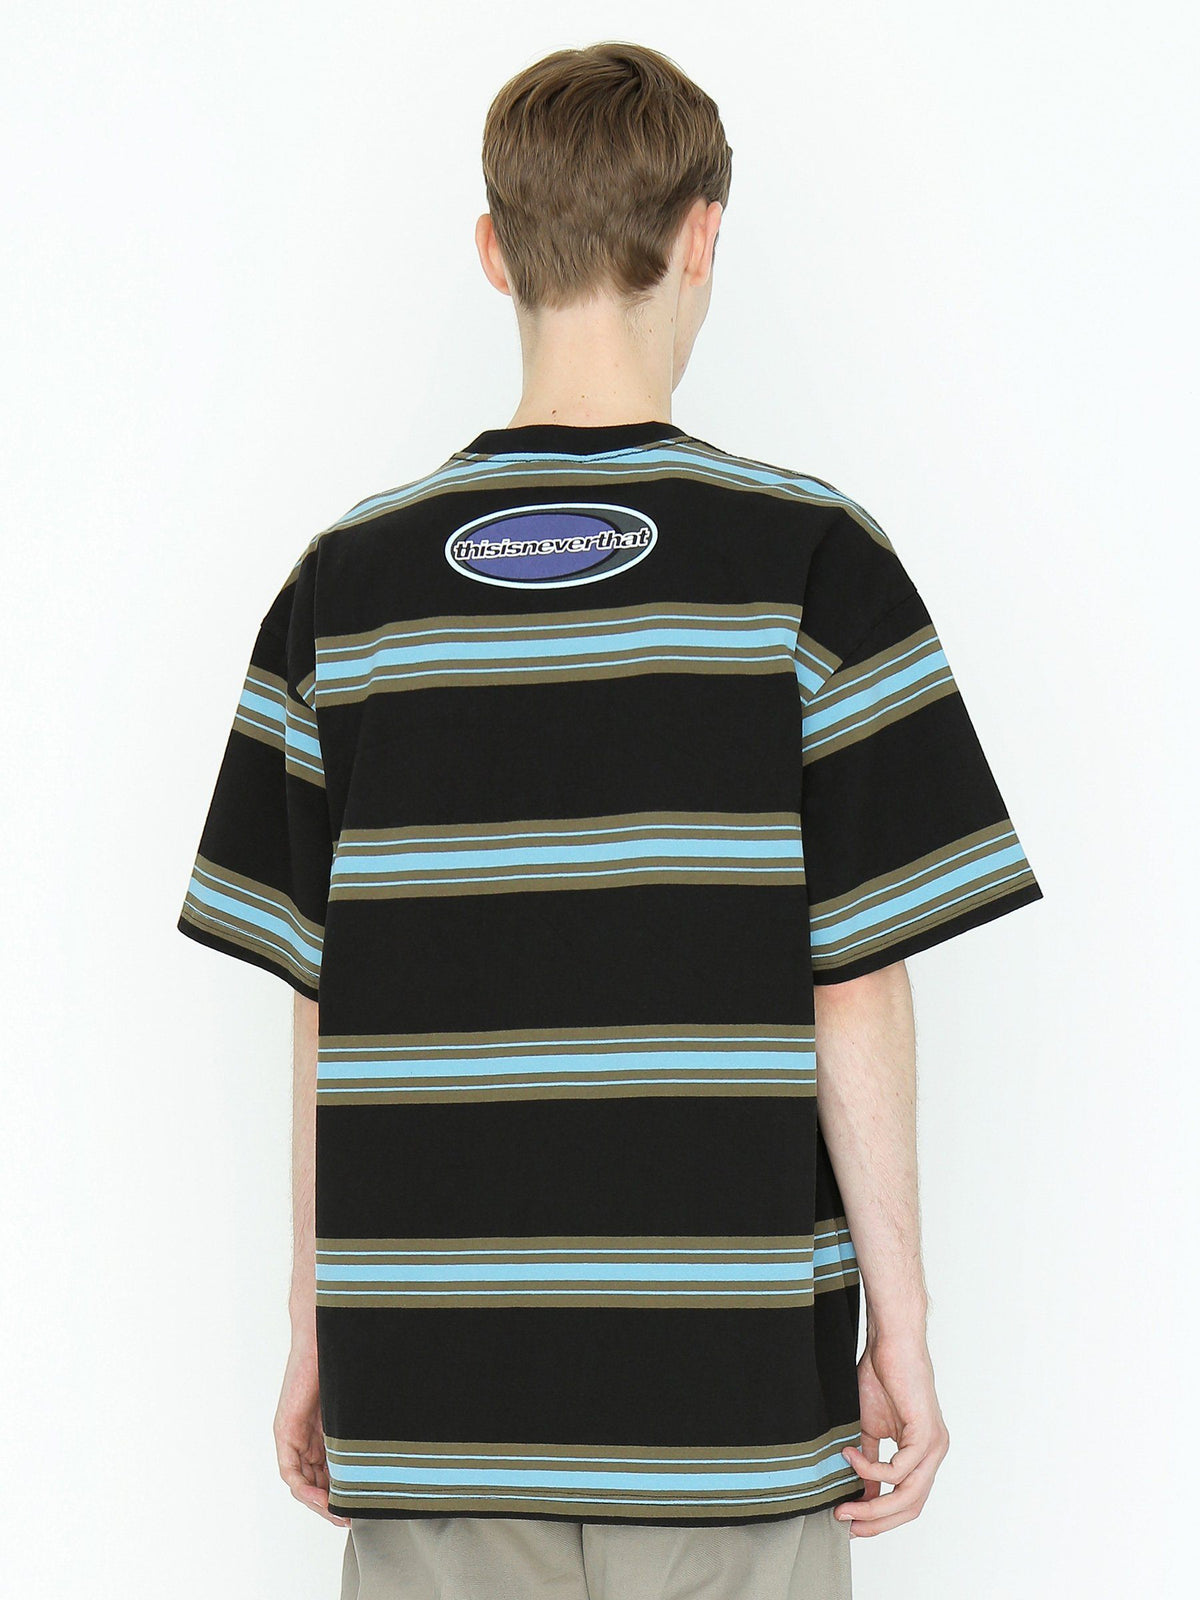 NEW SPORT Striped Tee T-Shirt